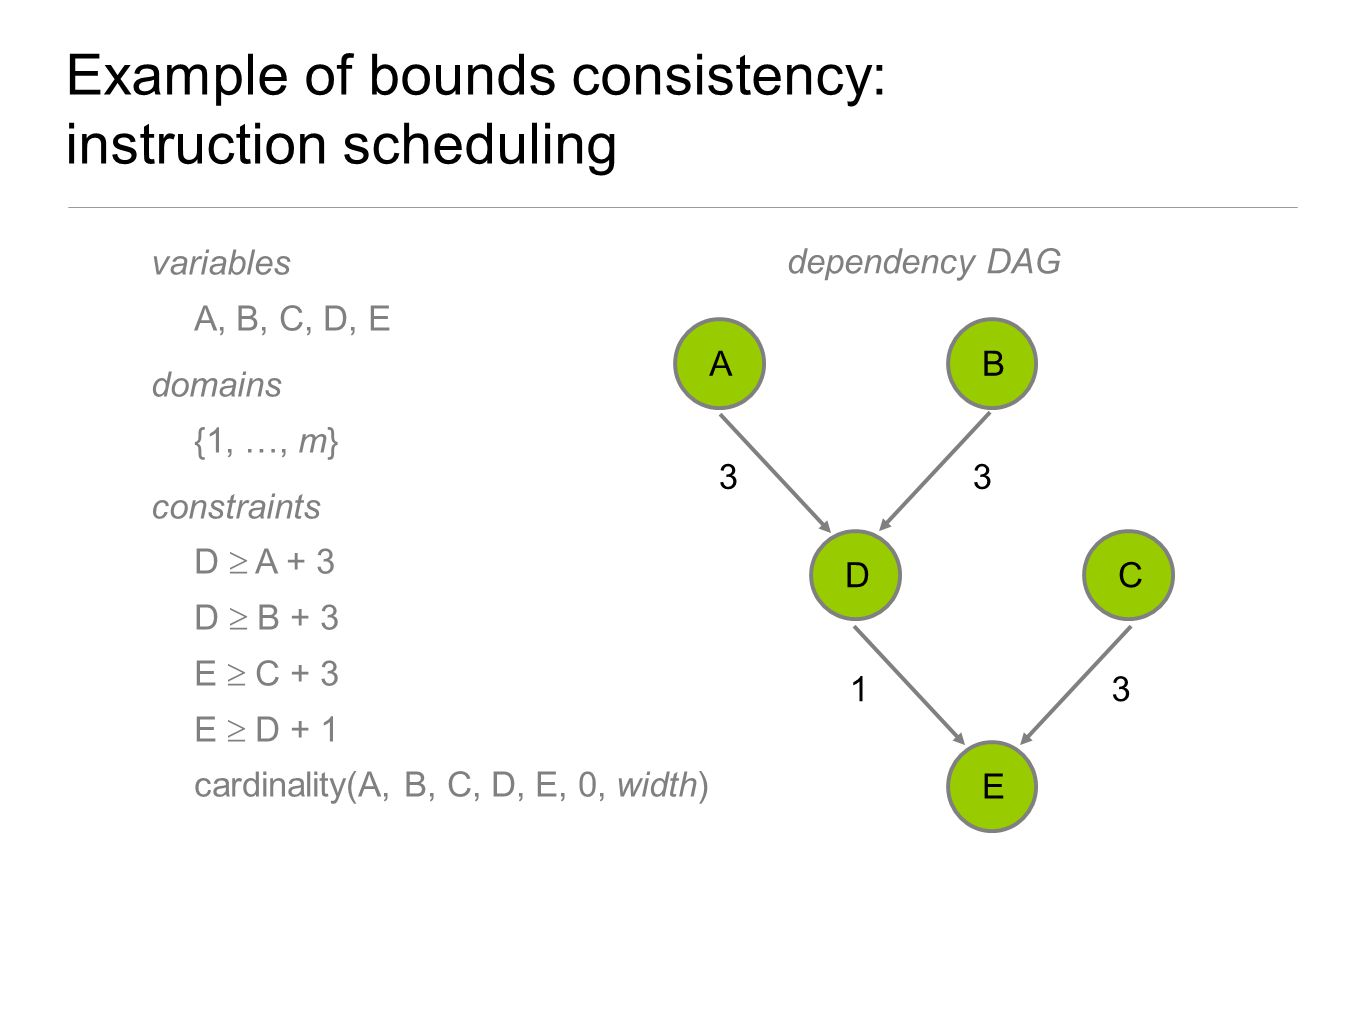 Example of bounds consistency: instruction scheduling